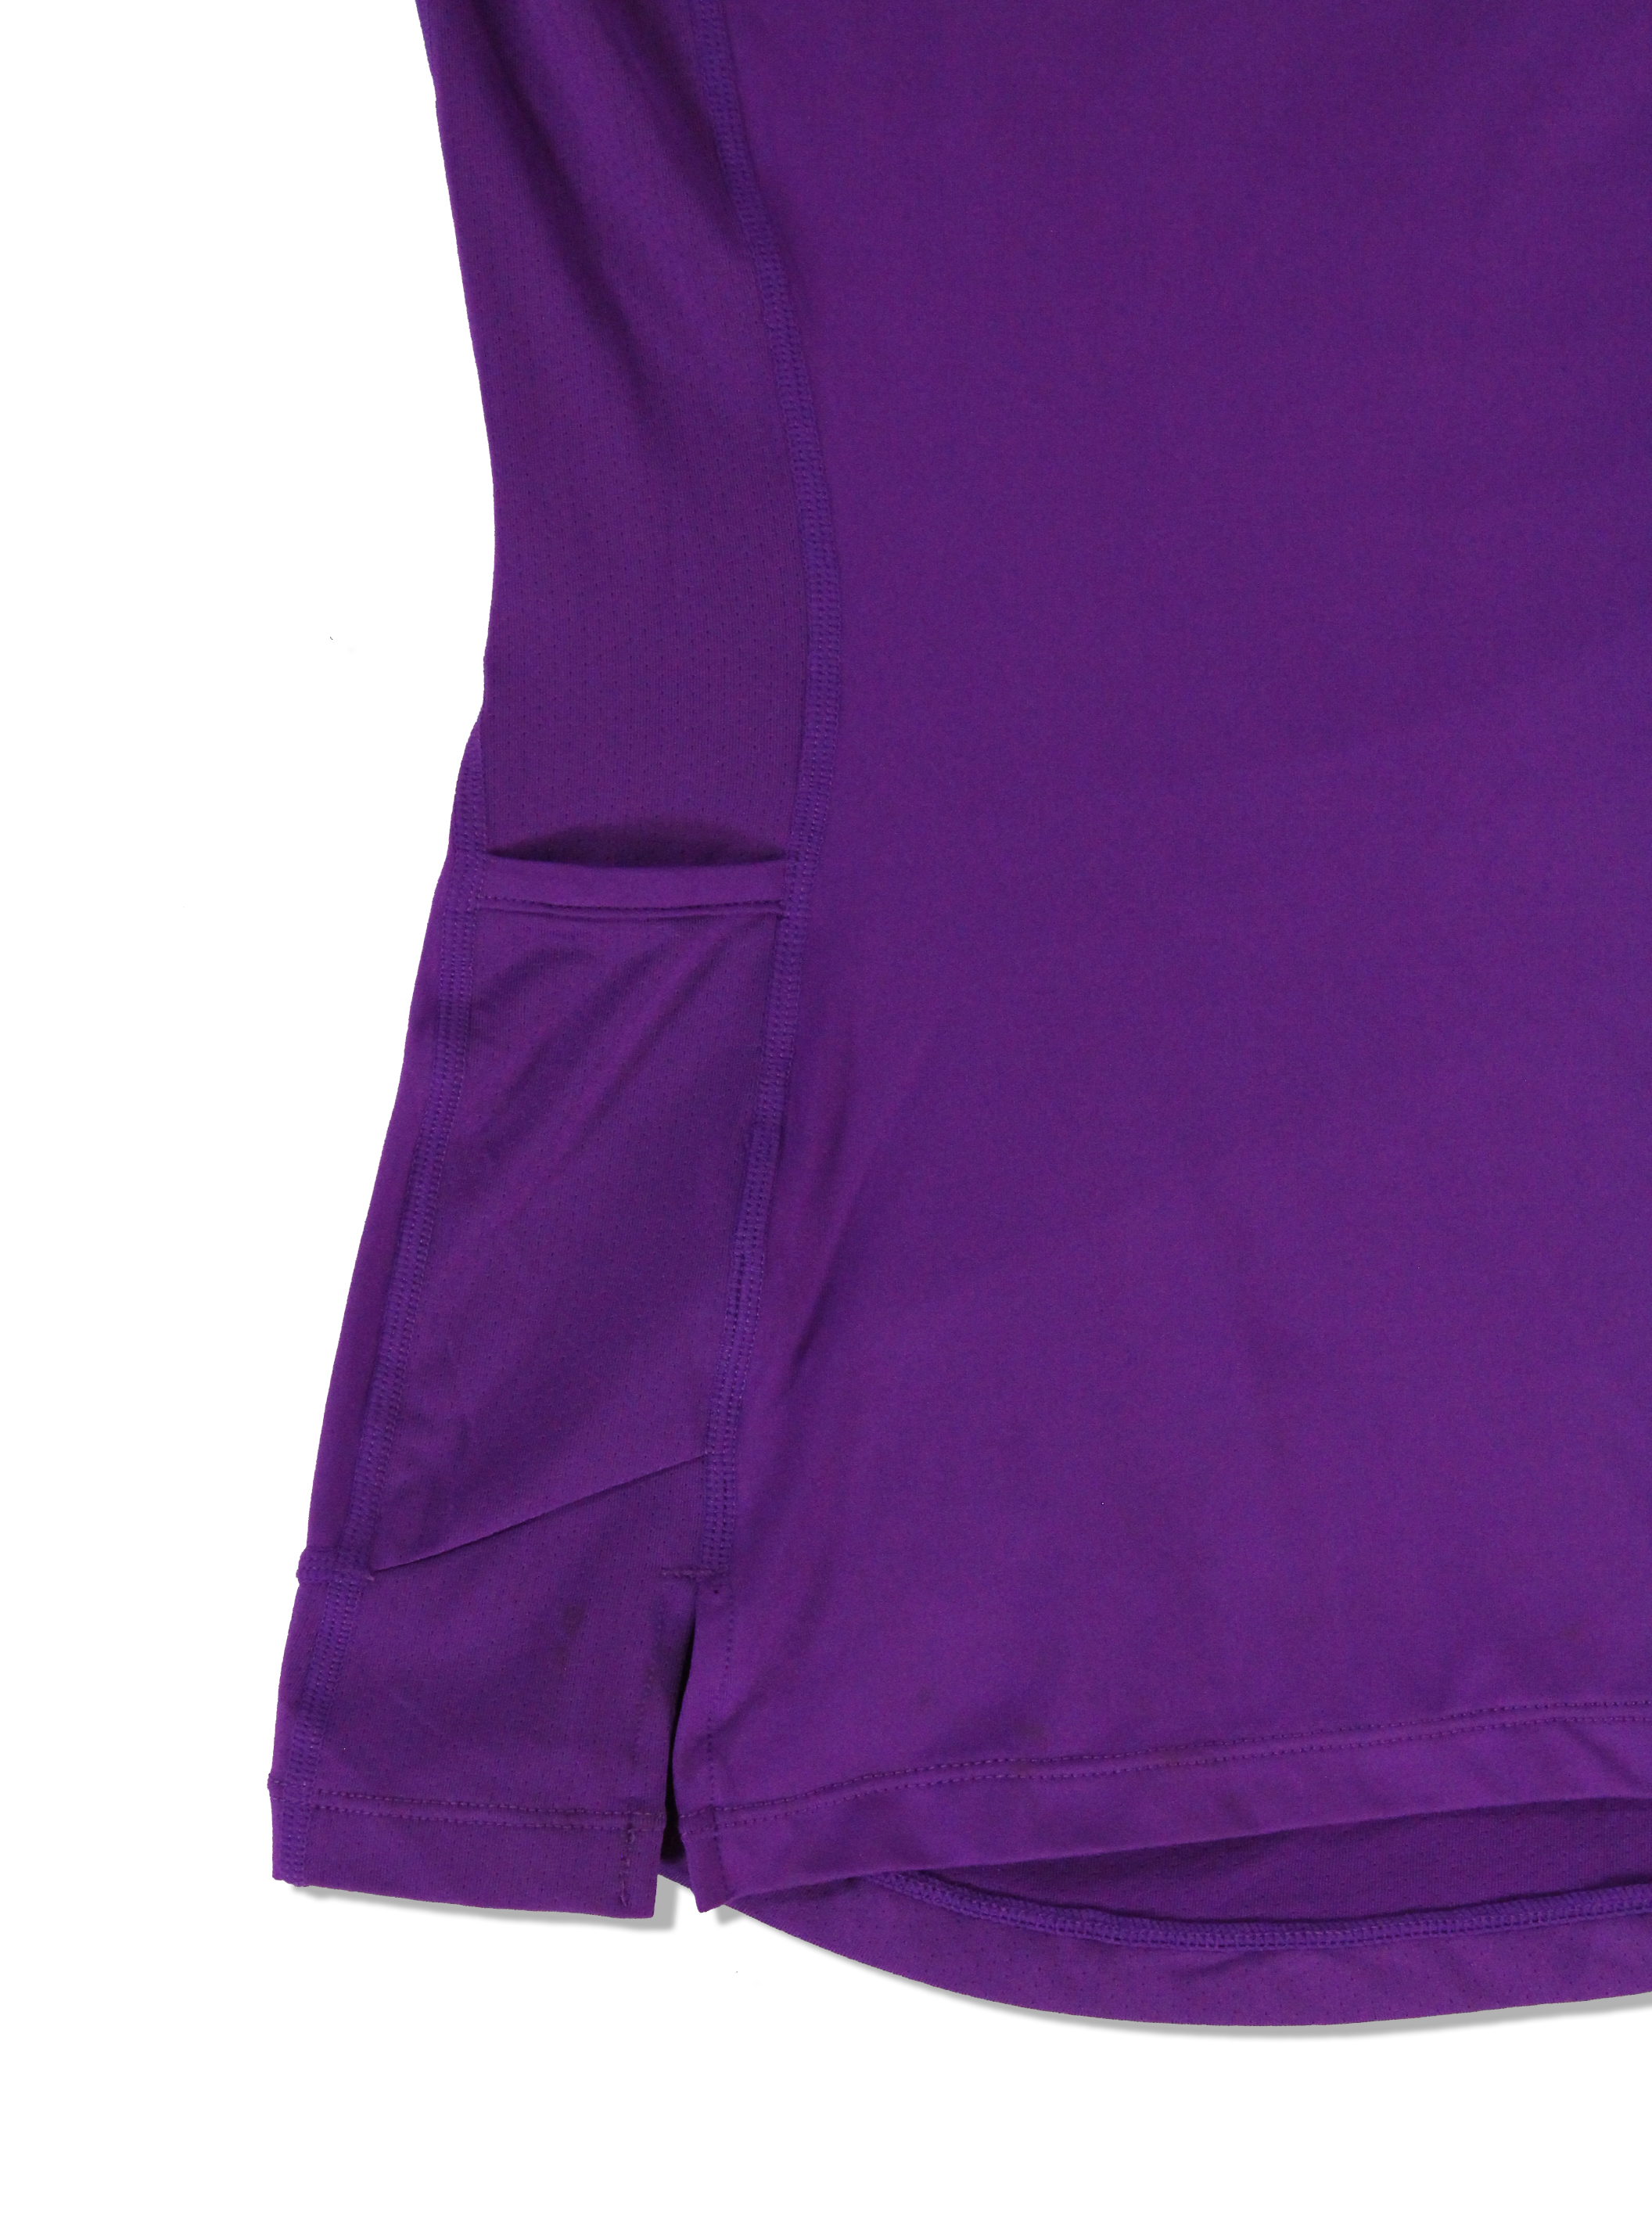 Asics-NEW-Solid-Hue-Women-039-s-V-Neck-Performance-ASX-Dry-T-Shirt-Top-38 thumbnail 15